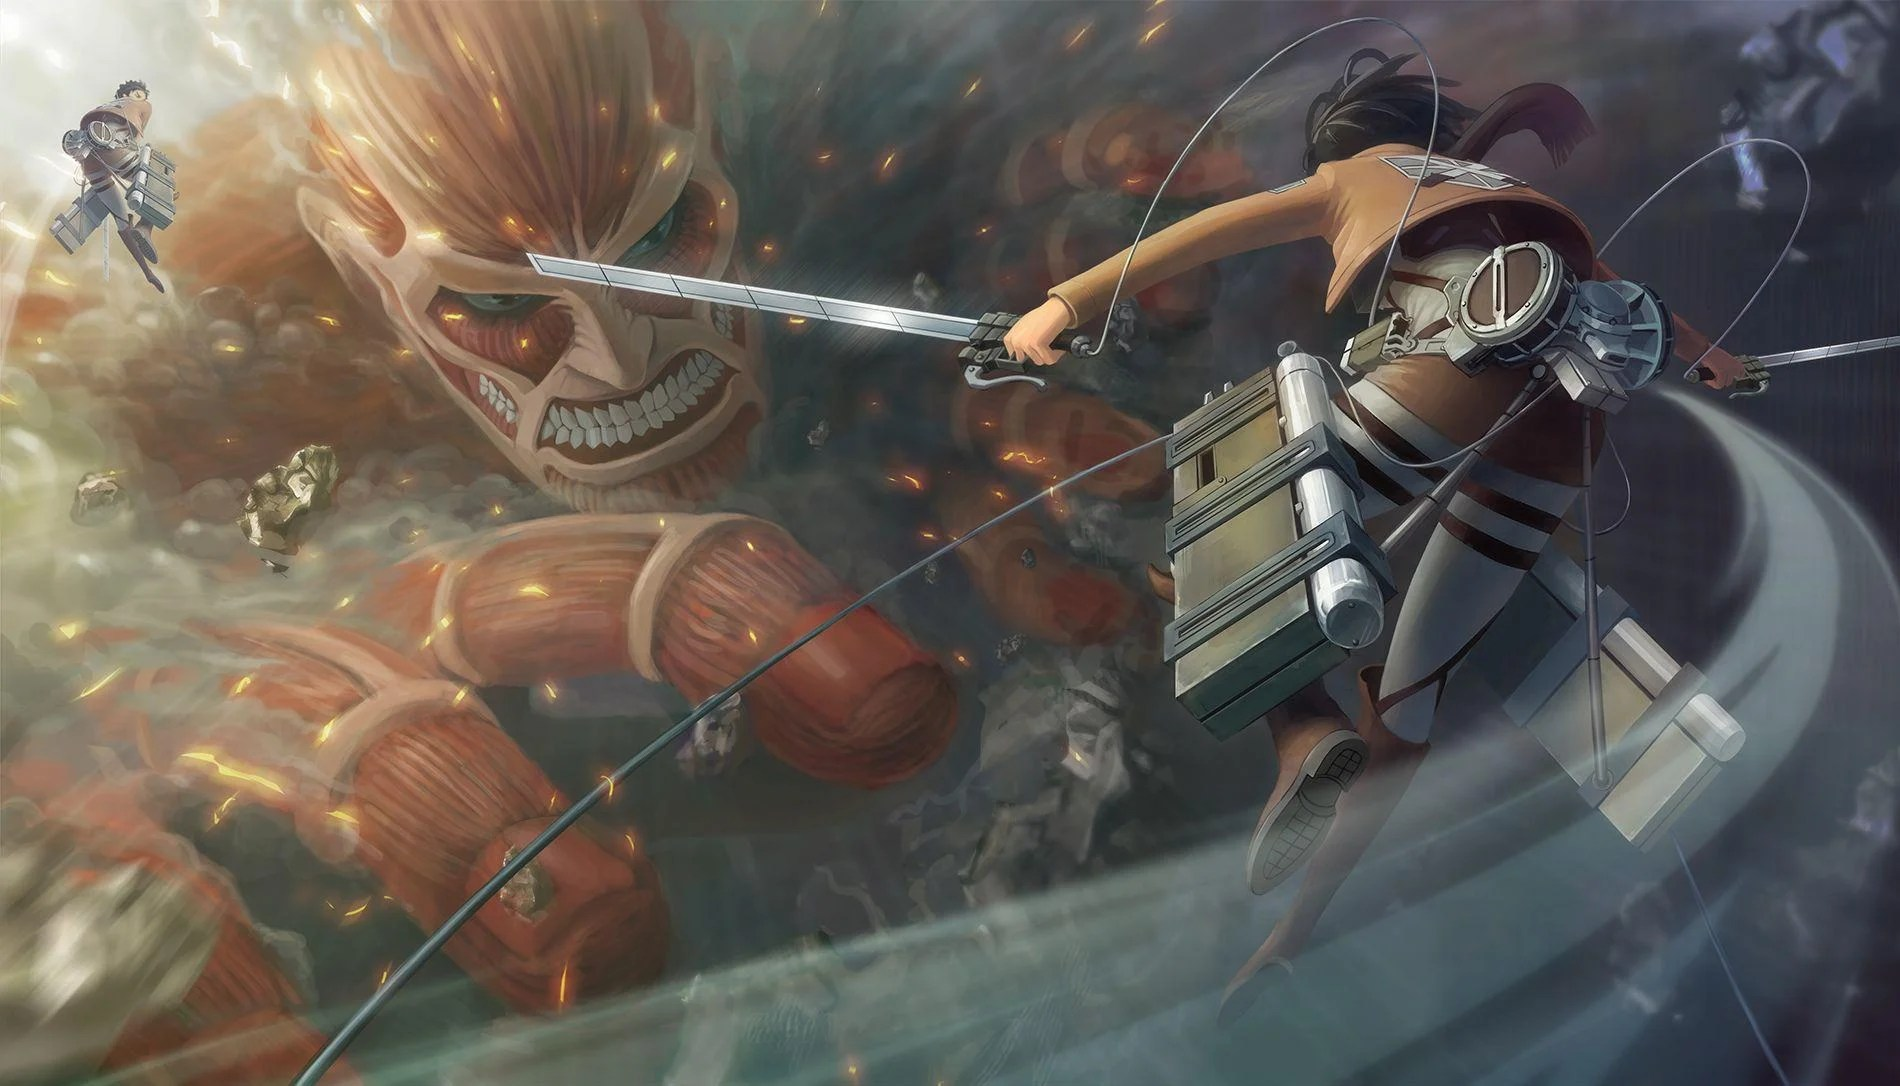 On april 15, 1912, the titanic entered history as one of the most notorious disasters at sea when the unsinkable ship struck an iceberg. Attack On Titan Wallpapers - Wallpaper Cave